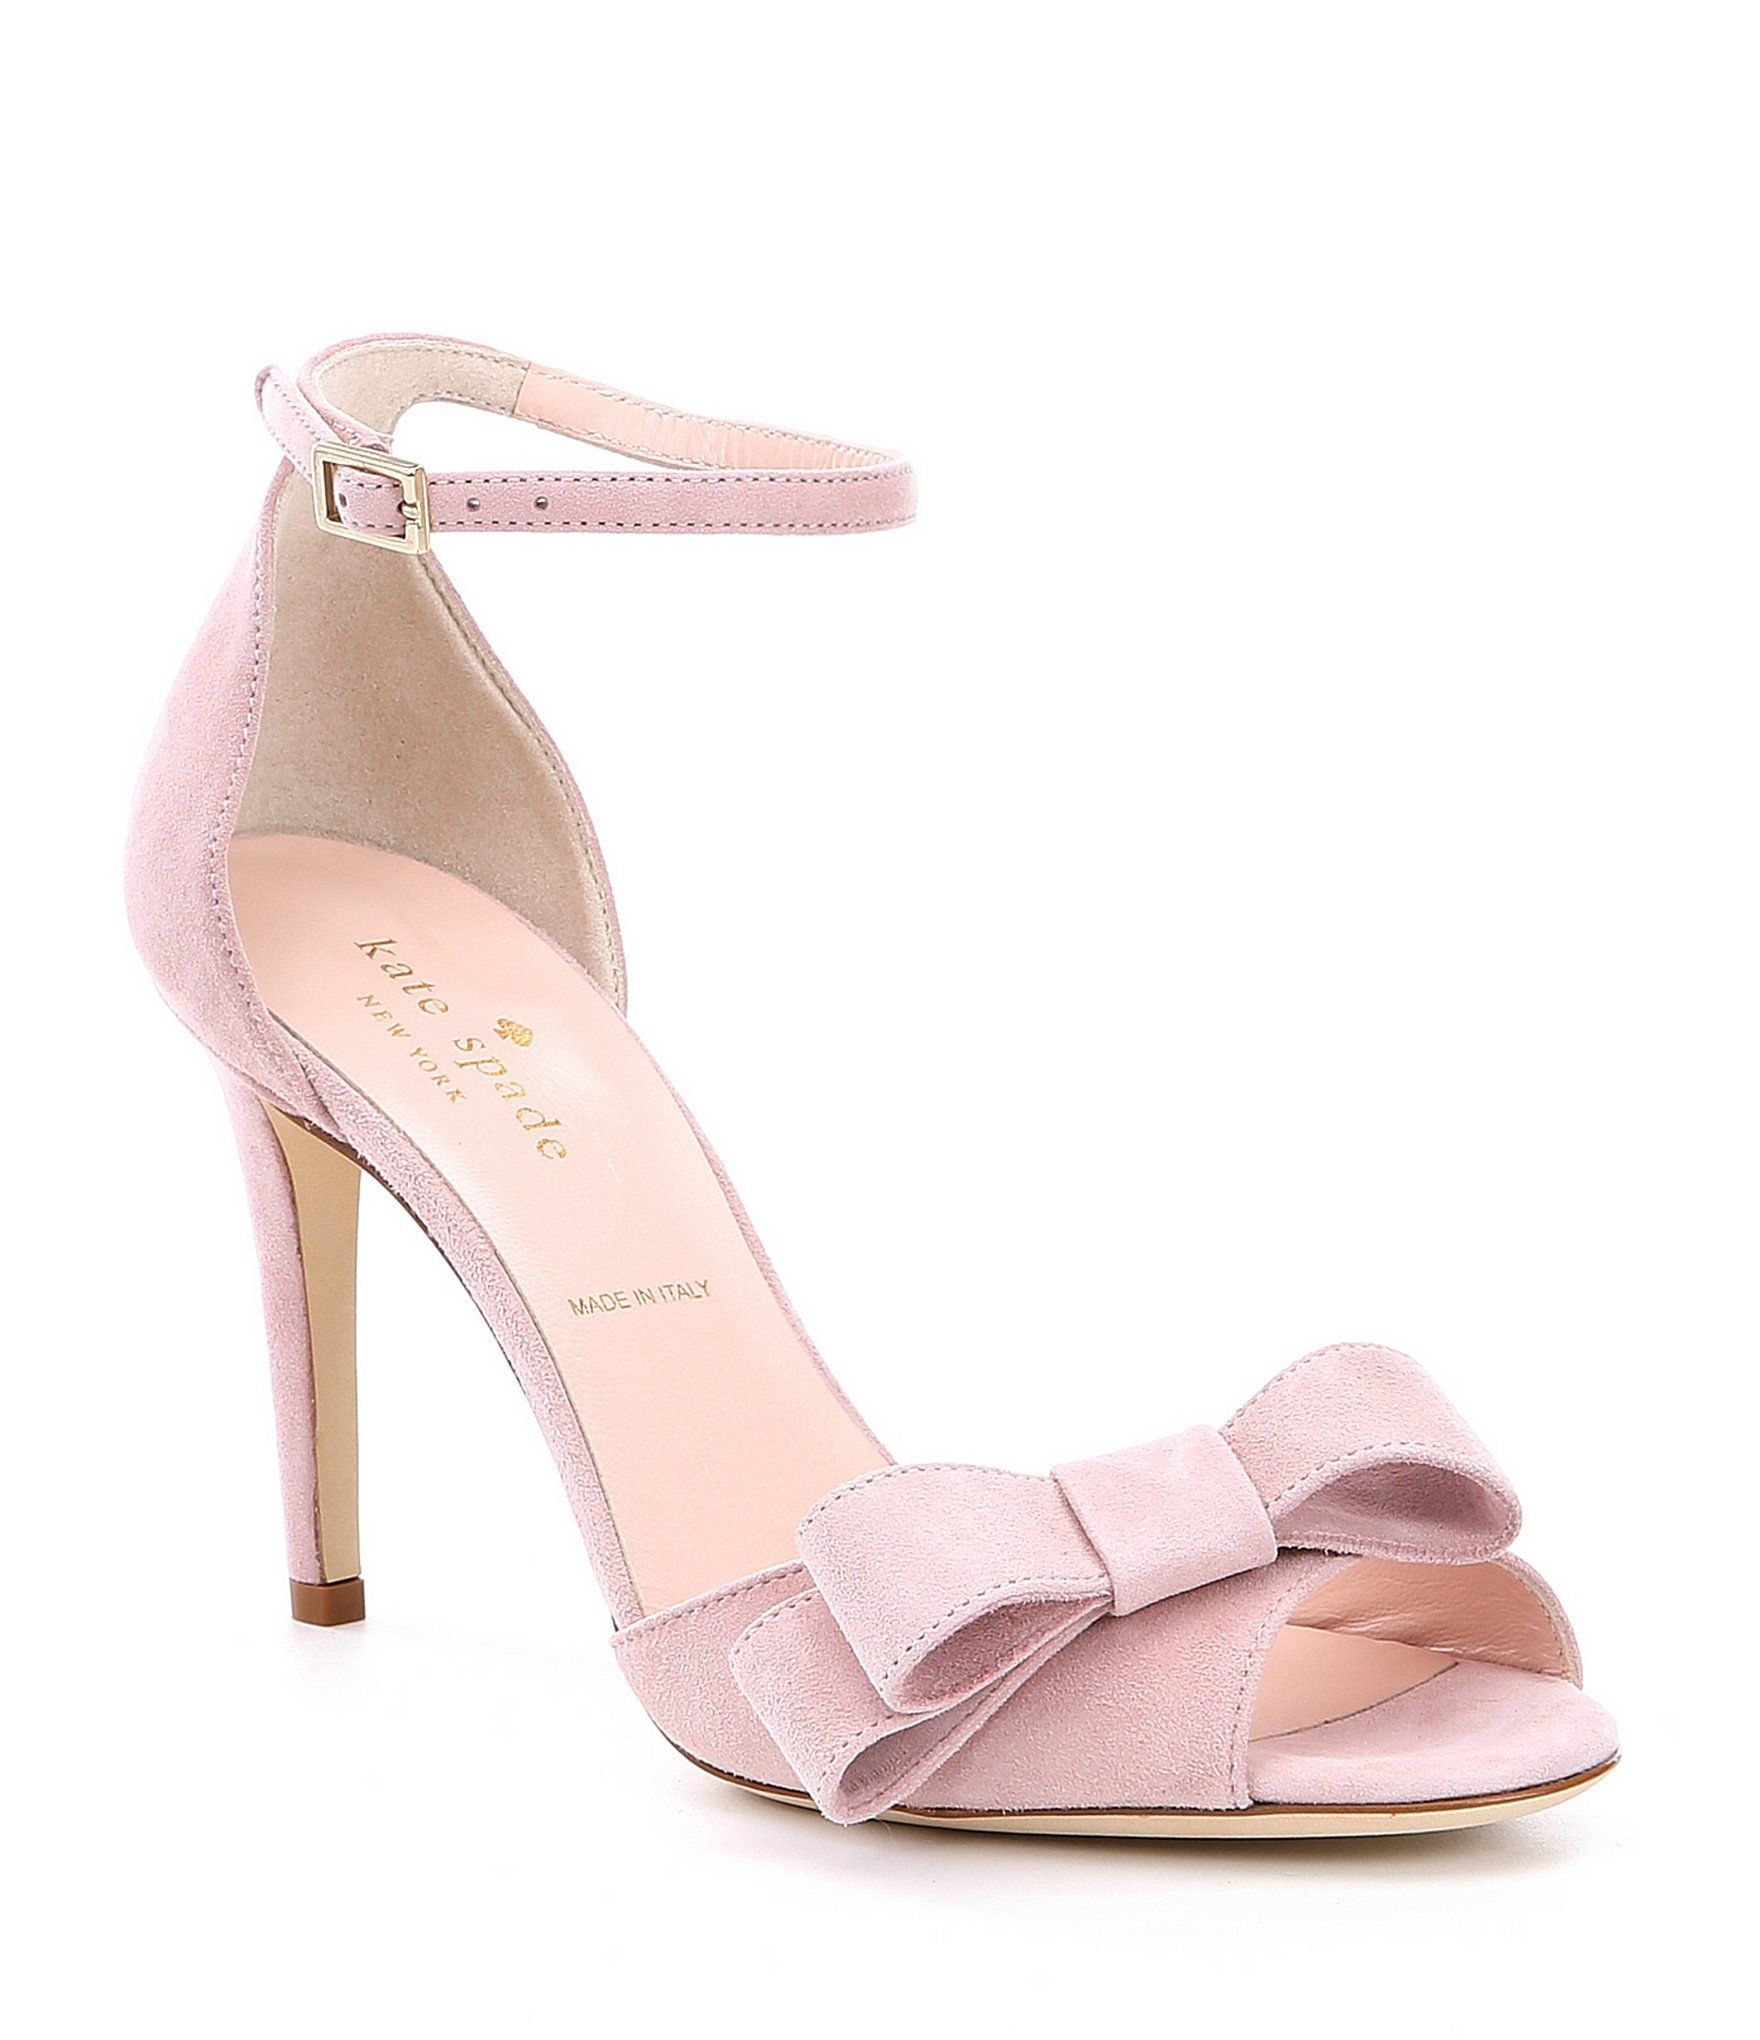 90e3993d2736 kate spade new york Ismay Bow Detail Suede Dress Sandals